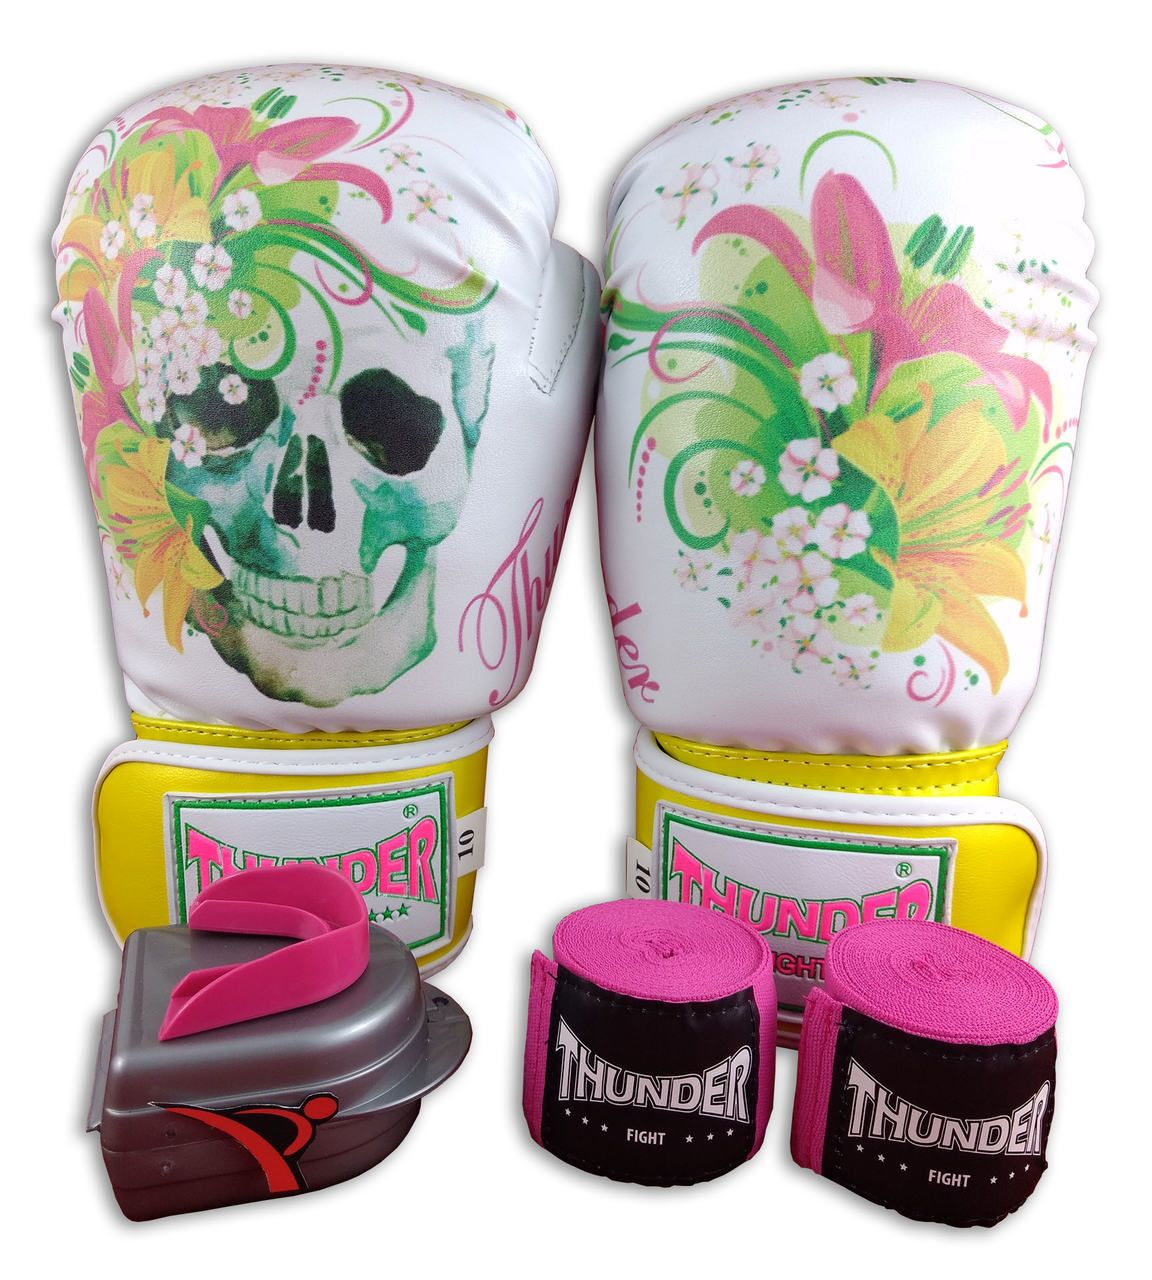 Kit de Muay Thai / Kickboxing Feminino 10oz - Caveira Amarela - Thunder Fight  - PRALUTA SHOP